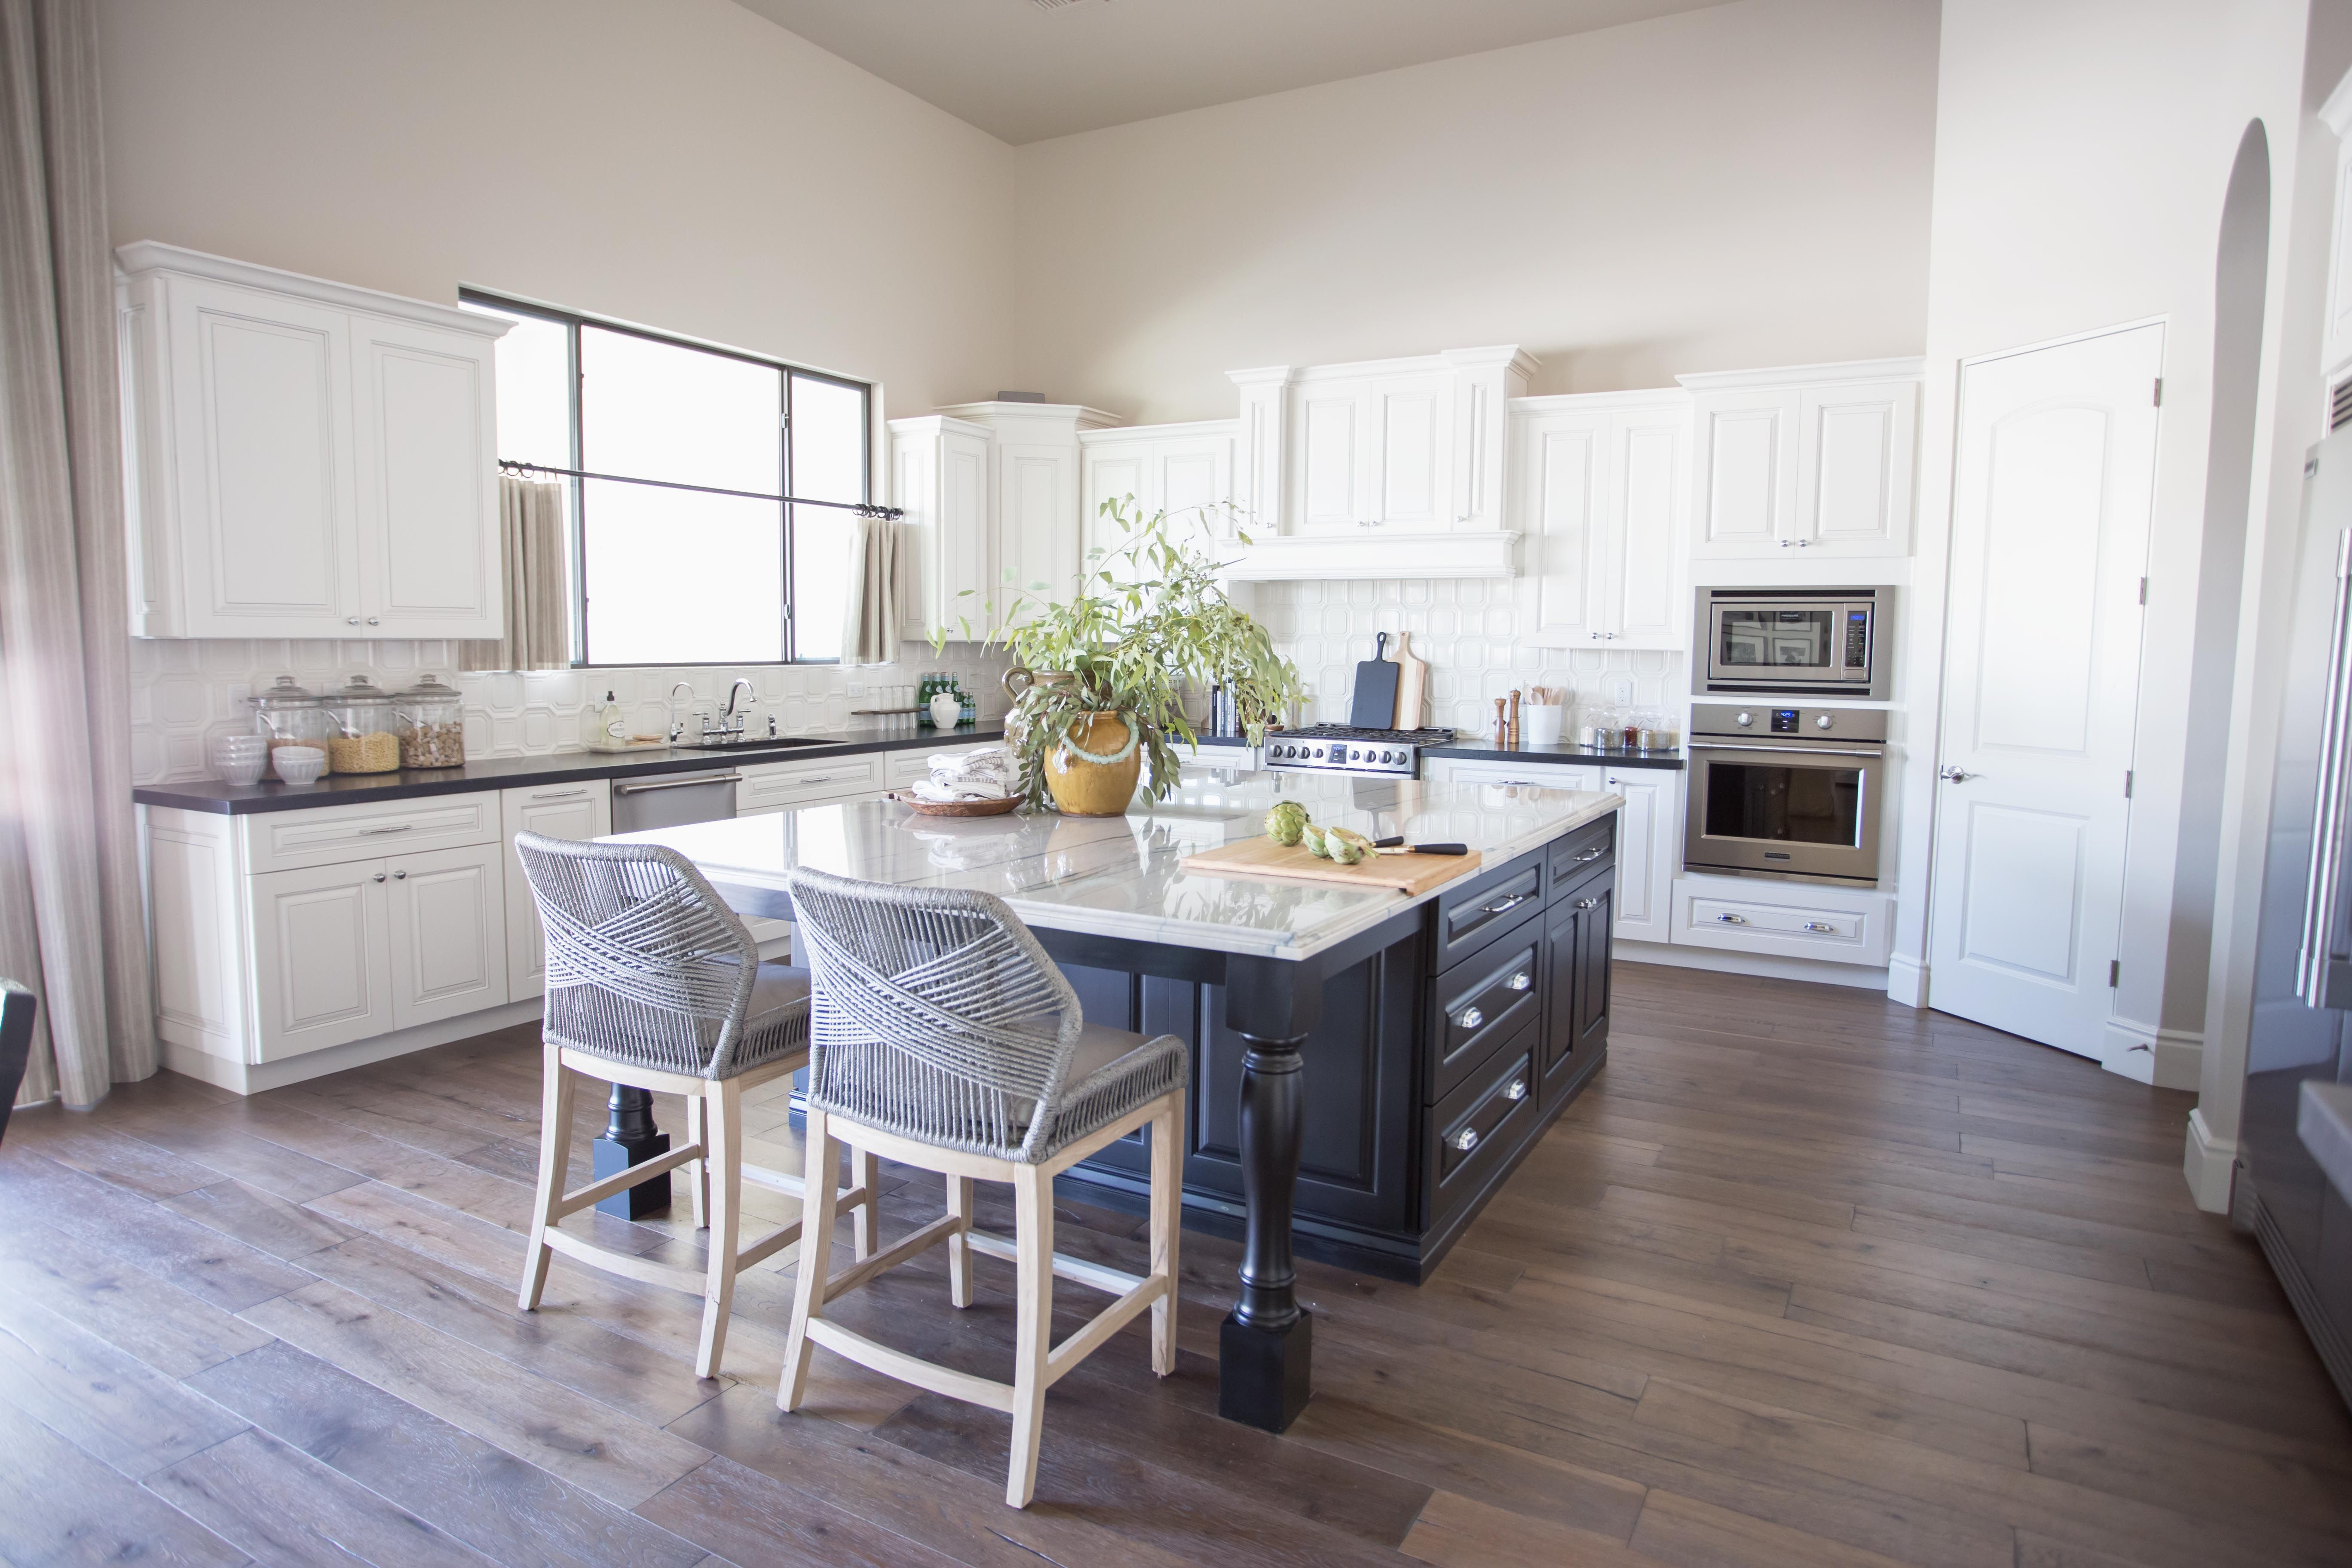 Santa Barbara Style Kitchen The Lifestyled Company Scorpio Place Project Scorpioplaceproject White Cabinets Kitchen Design Mixed Dining Chairs Kitchen Styling